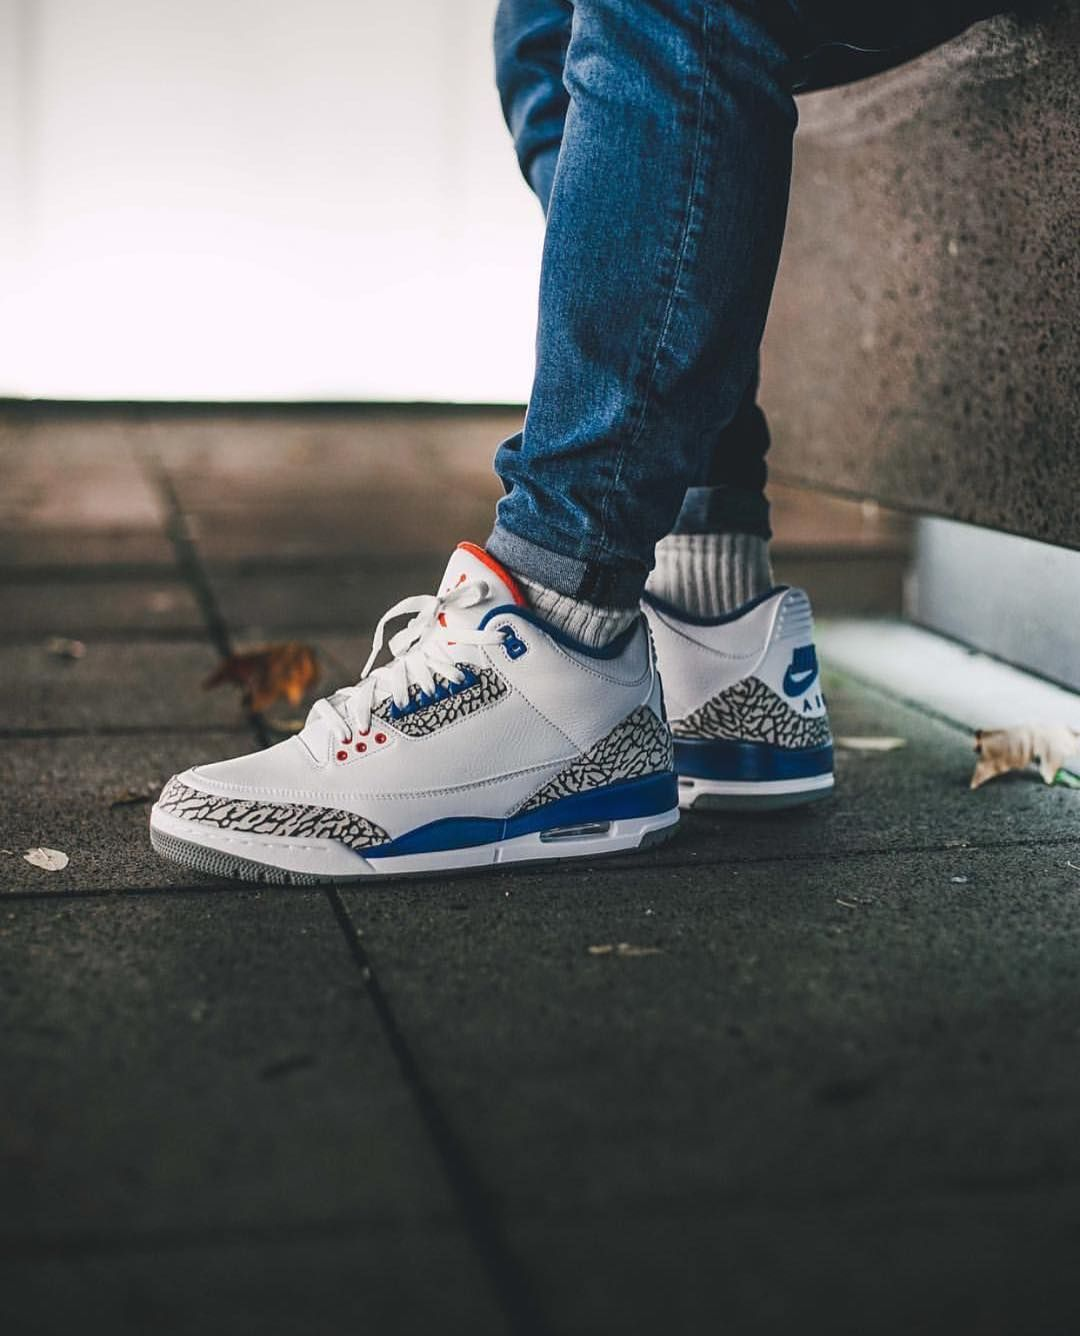 c1f0118f7d5 Air Jordan 3 Retro OG  True Blue  (via Kicks-daily.com)